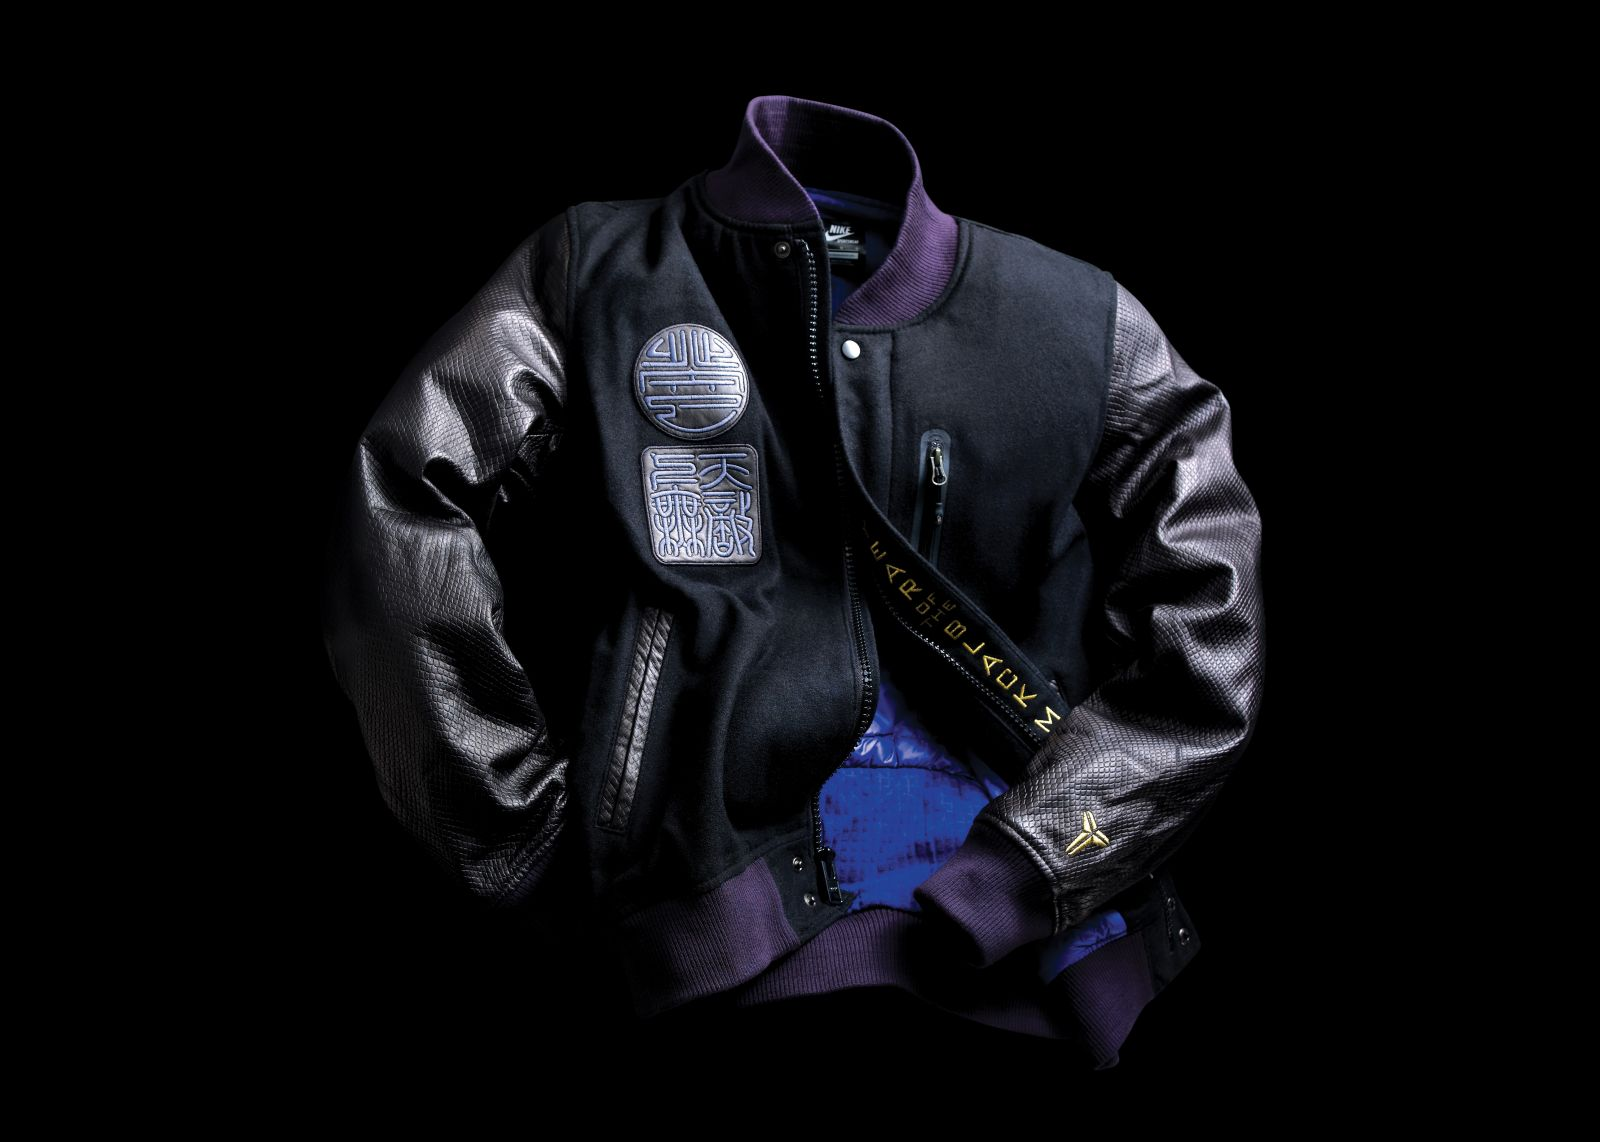 Nike jacket in chinese - Nike Kobe 8 System Year Of The Snake Collection